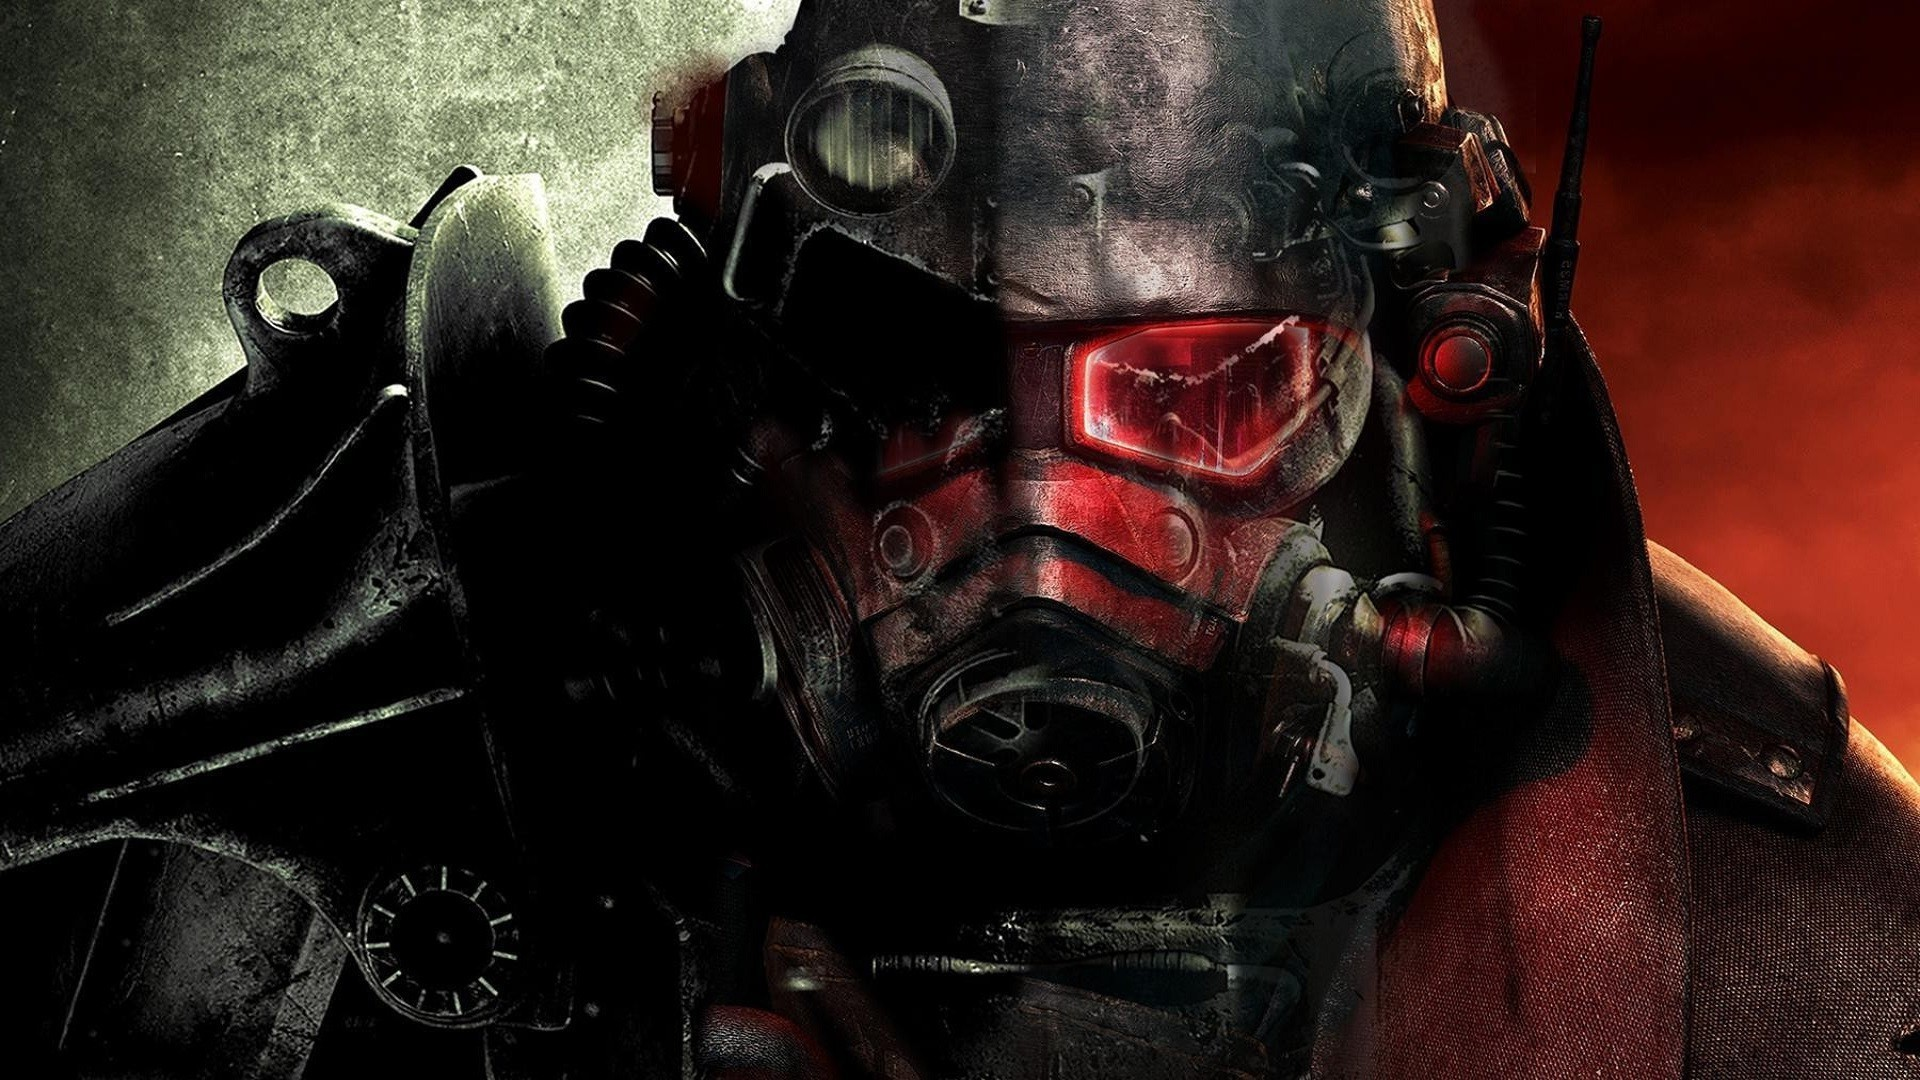 … video games fallout wallpapers hd desktop and mobile backgrounds …